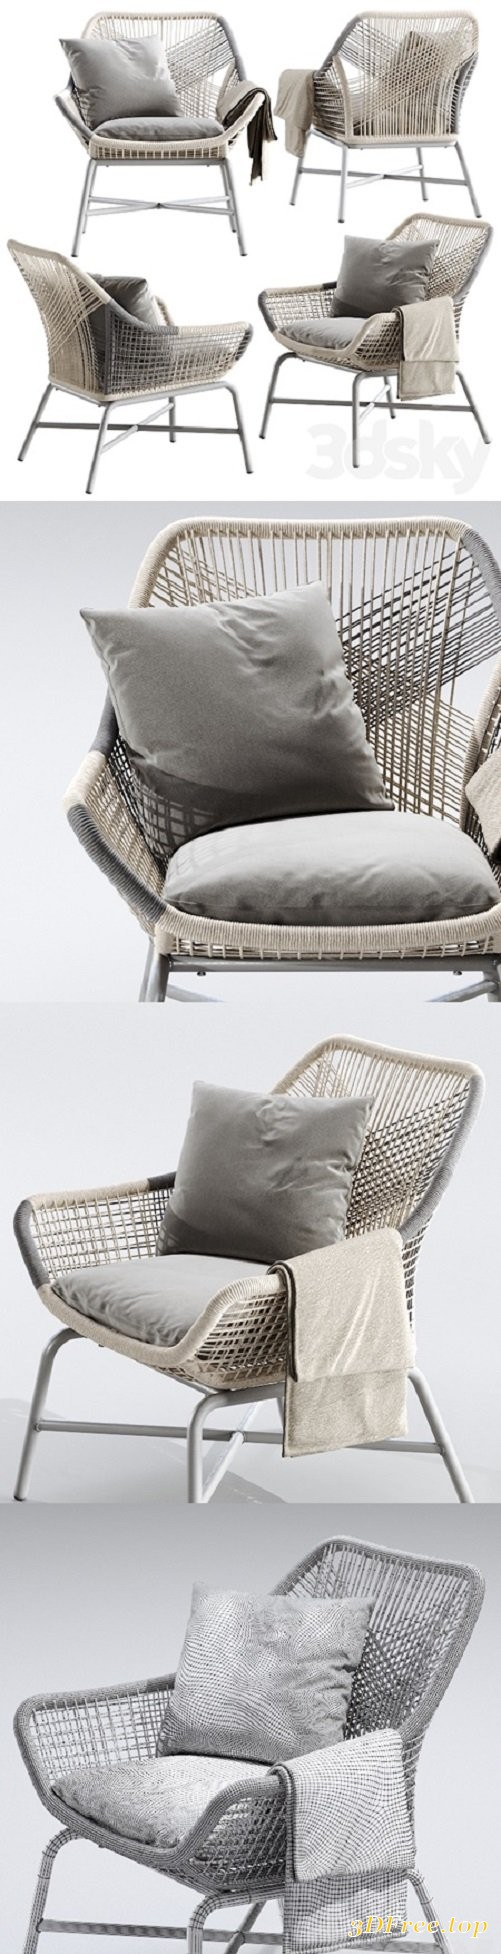 Westelm Huron Outdoor Small Lounge Chair